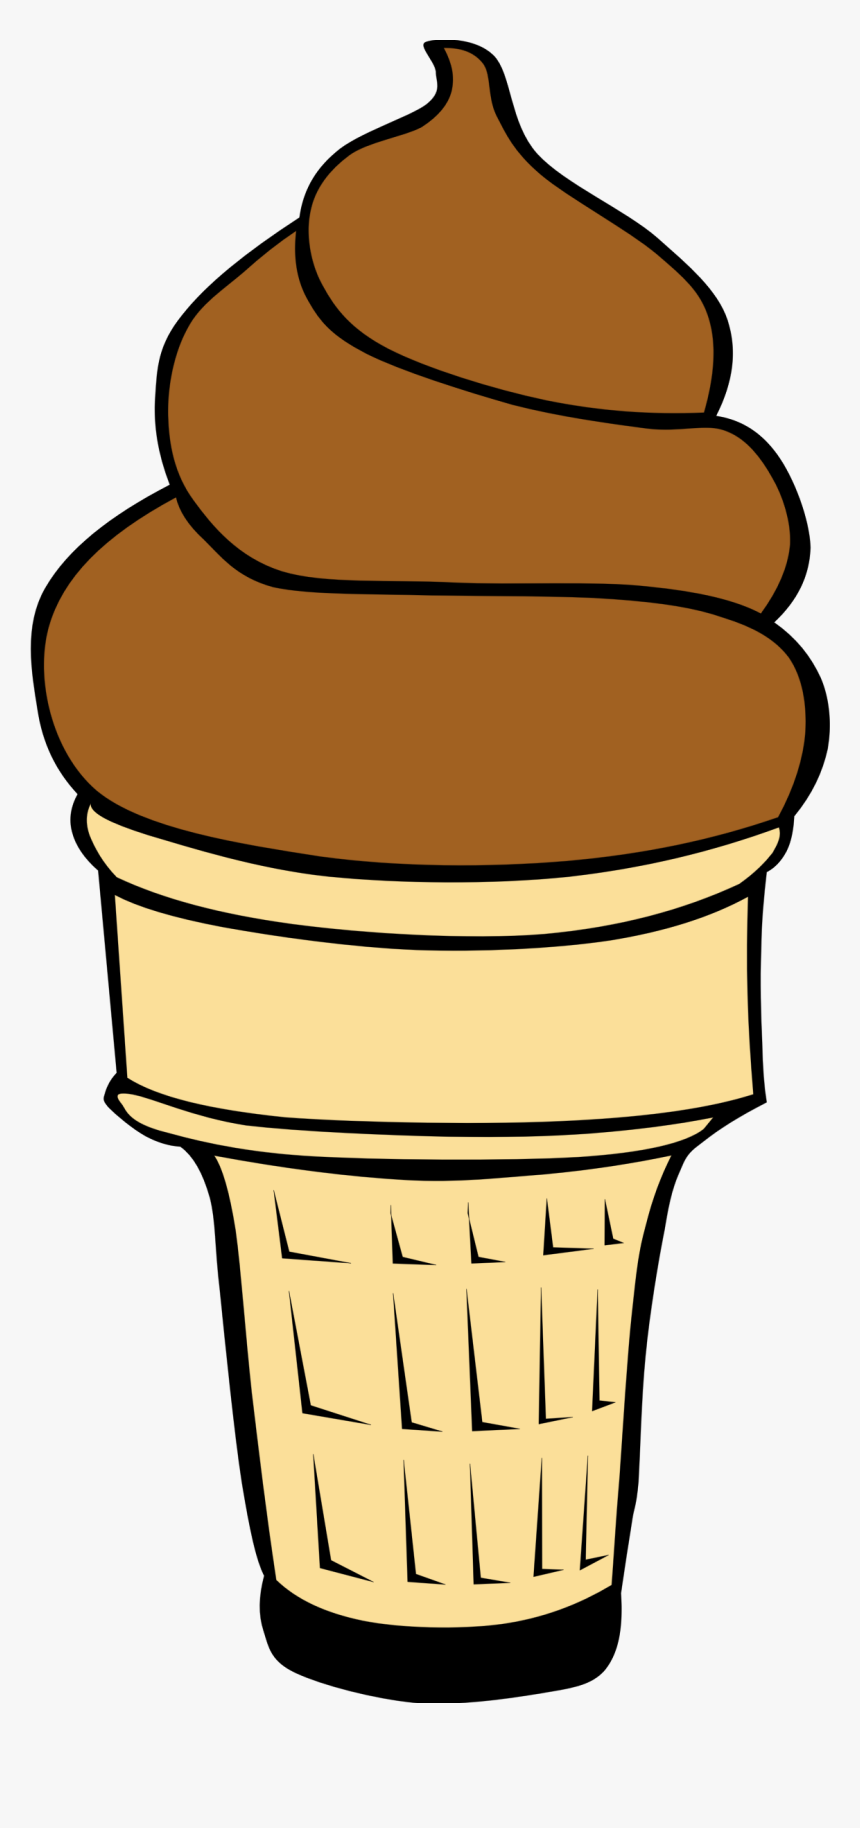 Empty Ice Cream Cone Clipart Free Clipart Images - Chocolate Ice Cream Cone Clip Art, HD Png Download, Free Download